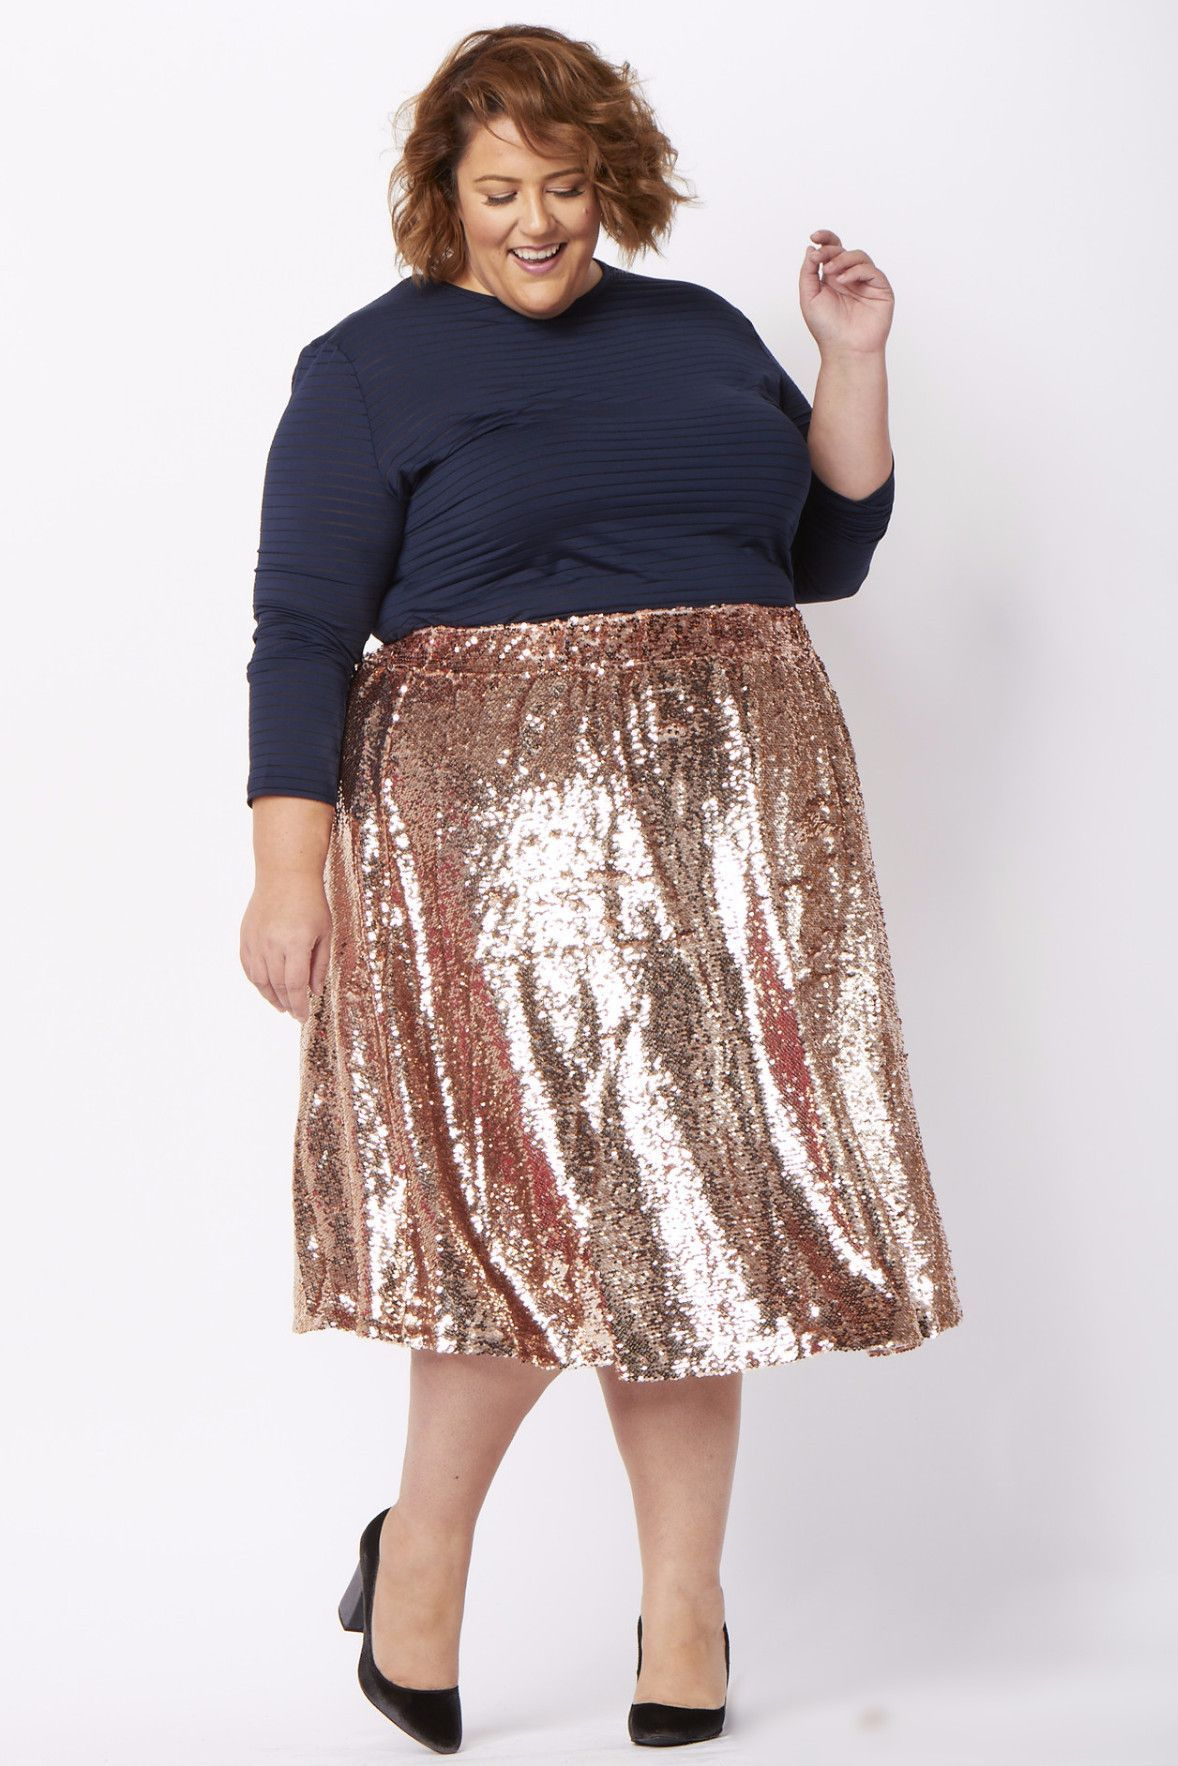 f130cf3fa98 Plus Size Clothing for Women - Mermaiden Sequin Skirt - Rose Gold -  Society+ - Society Plus - Buy Online Now! - 2